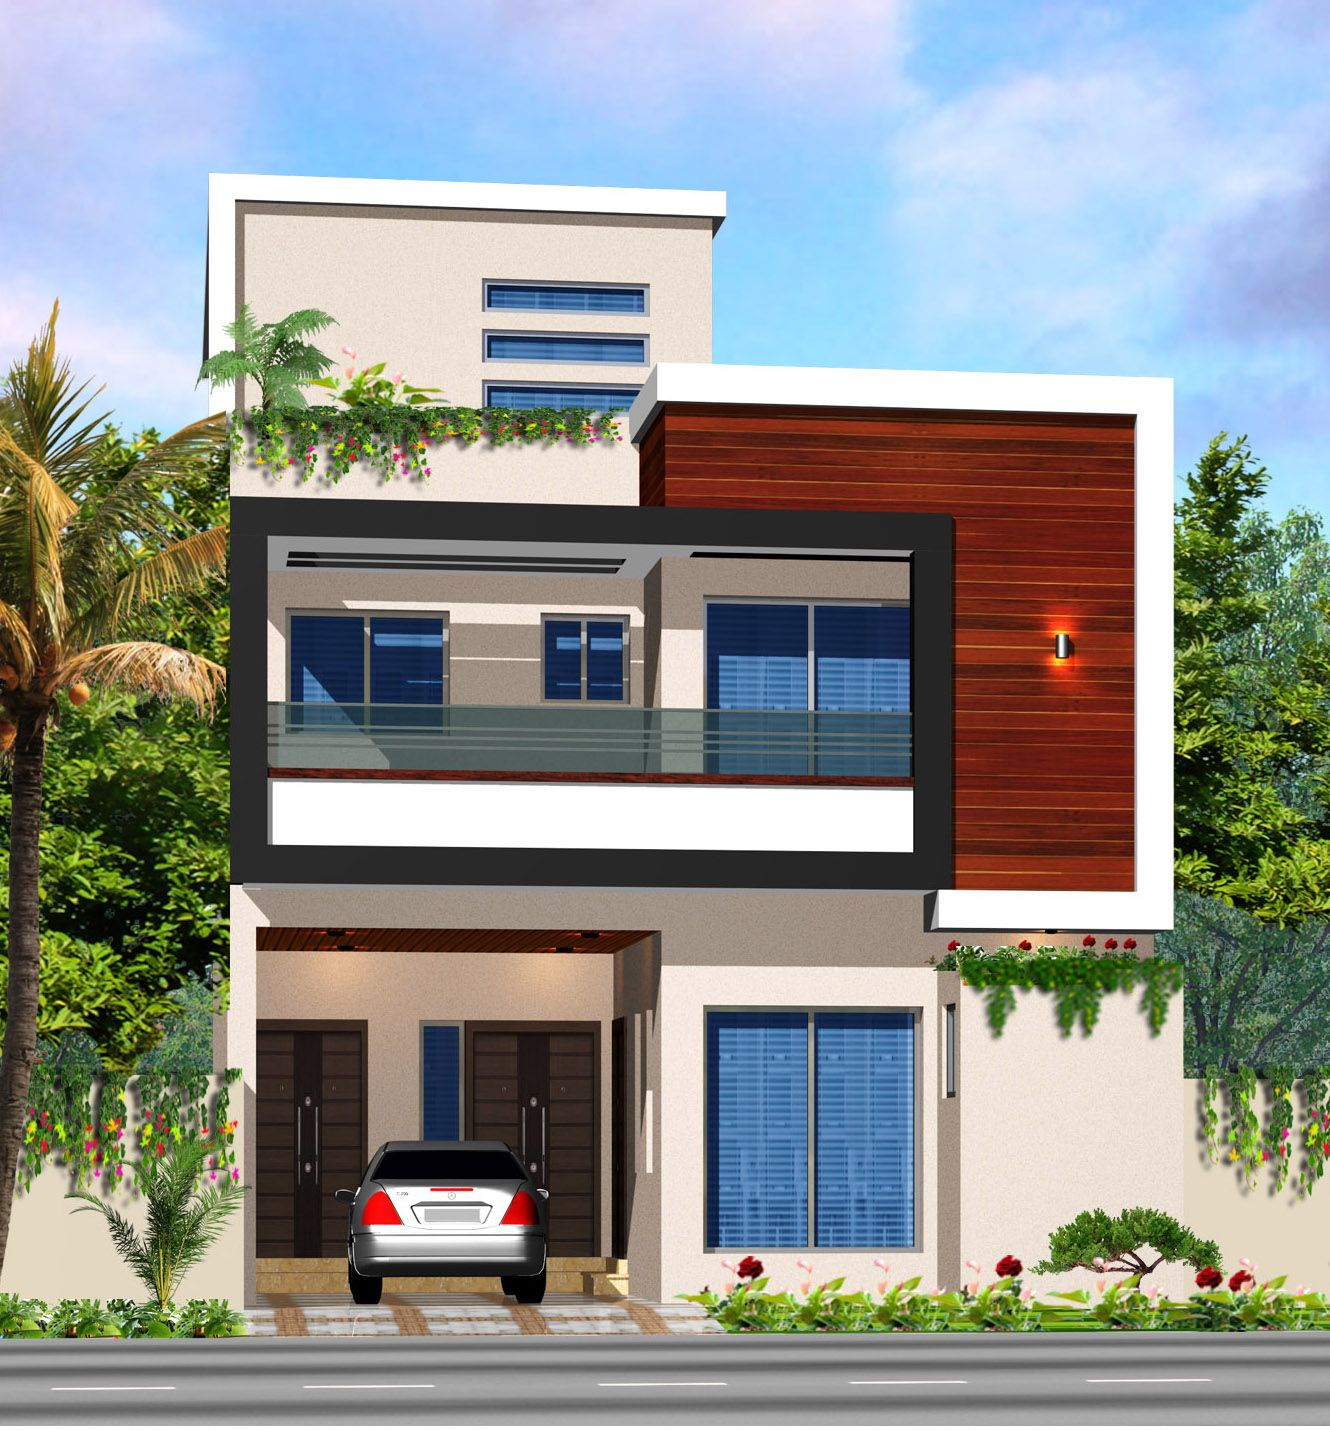 Front Elevation Images Free Download : R hajvery homes lahore screenshots pinterest